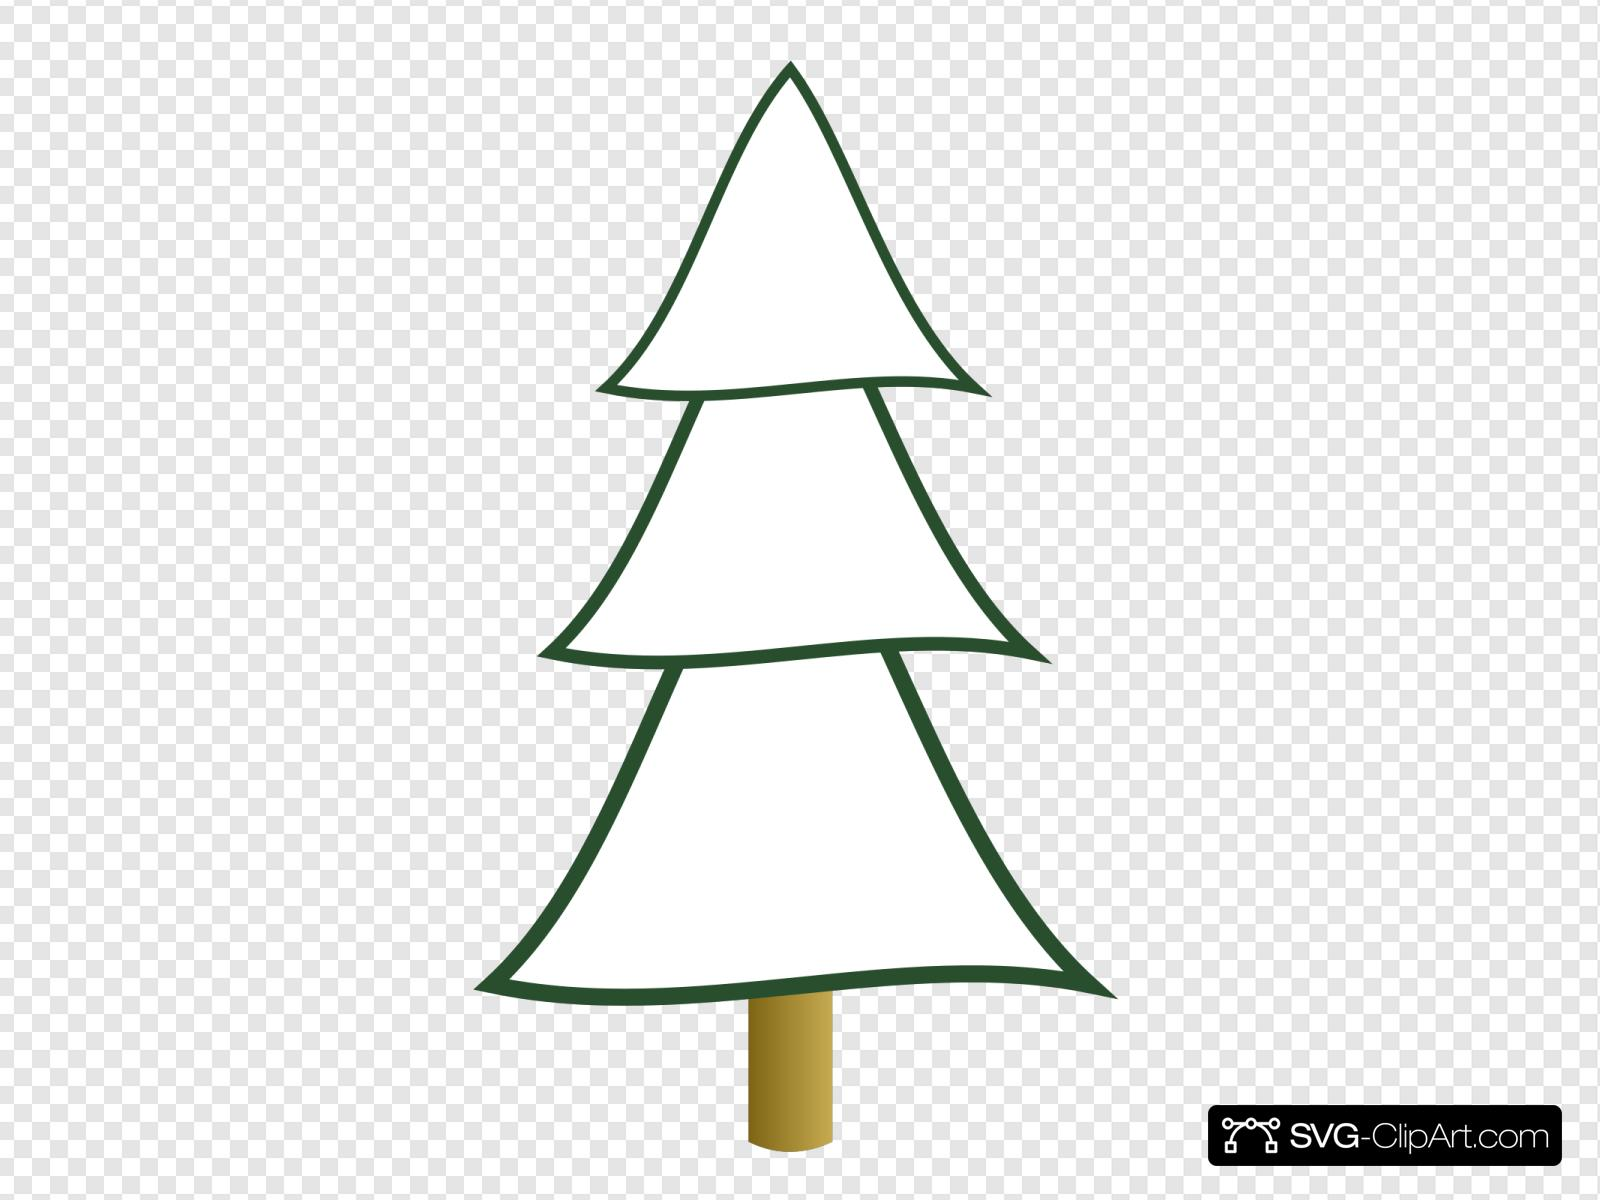 Christmas Tree Clipart Outline.Outline Christmas Tree 3 Layers Clip Art Icon And Svg Svg